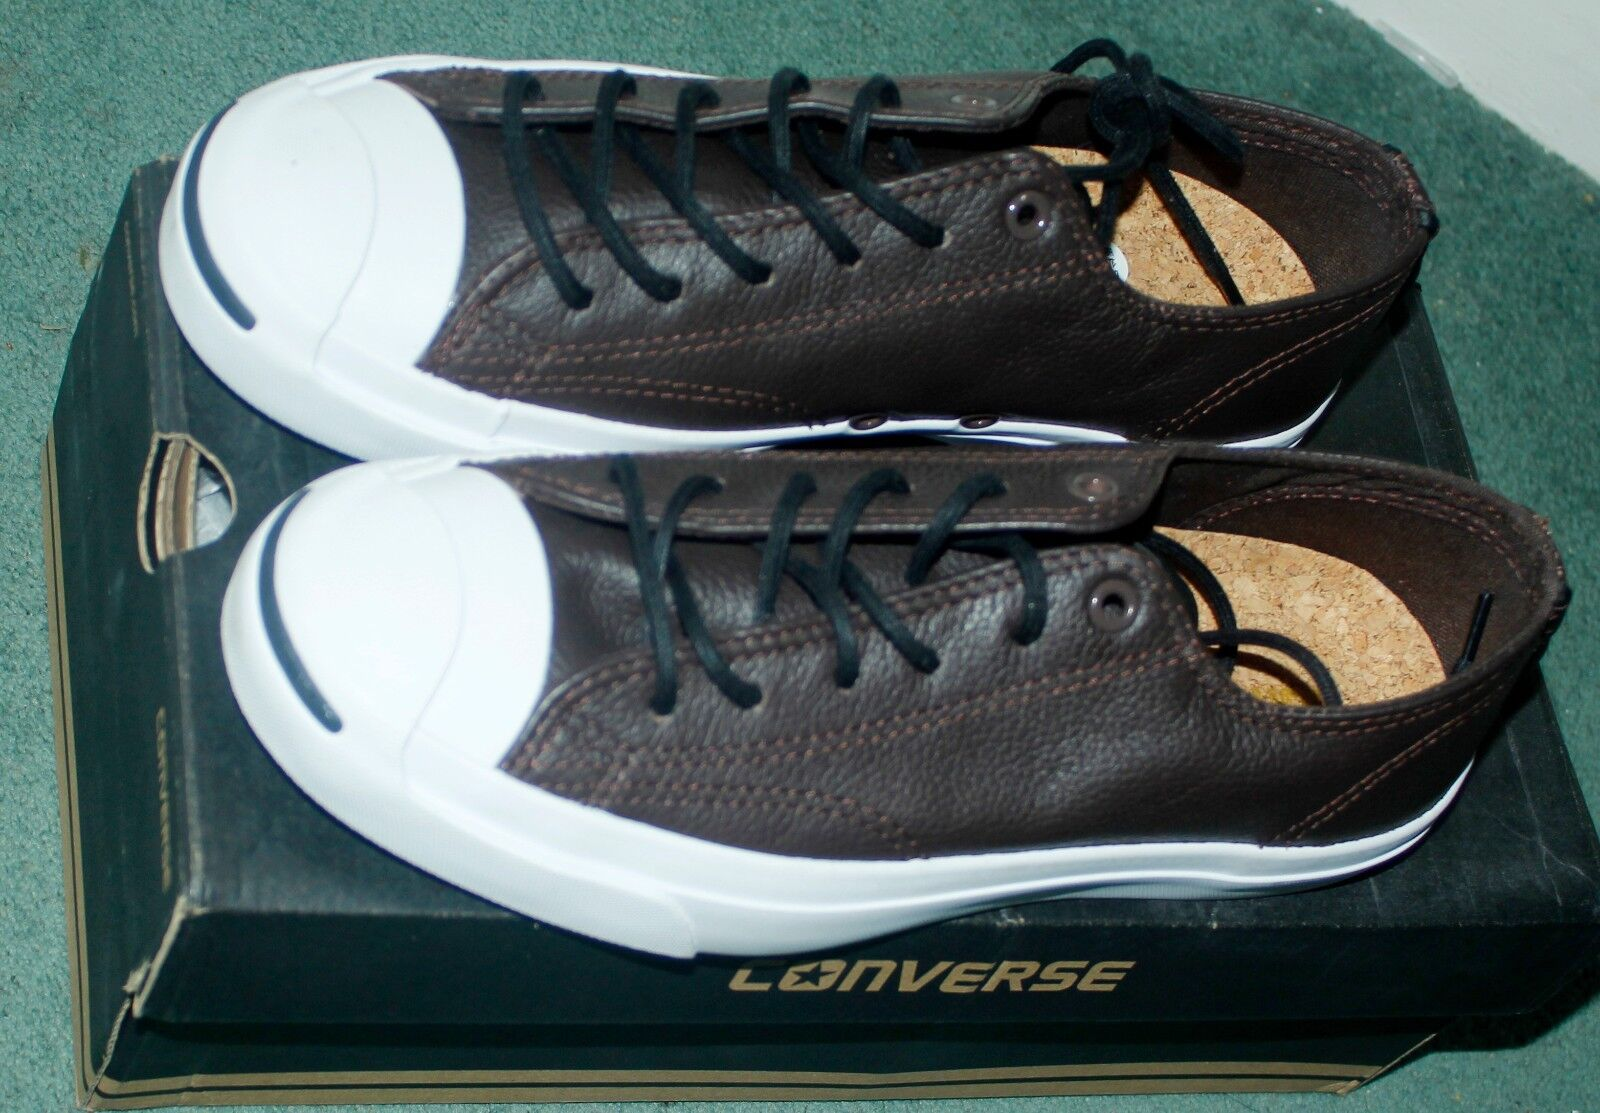 863e3c88e537b4 Converse Jack Purcell UK Size 6 for sale online